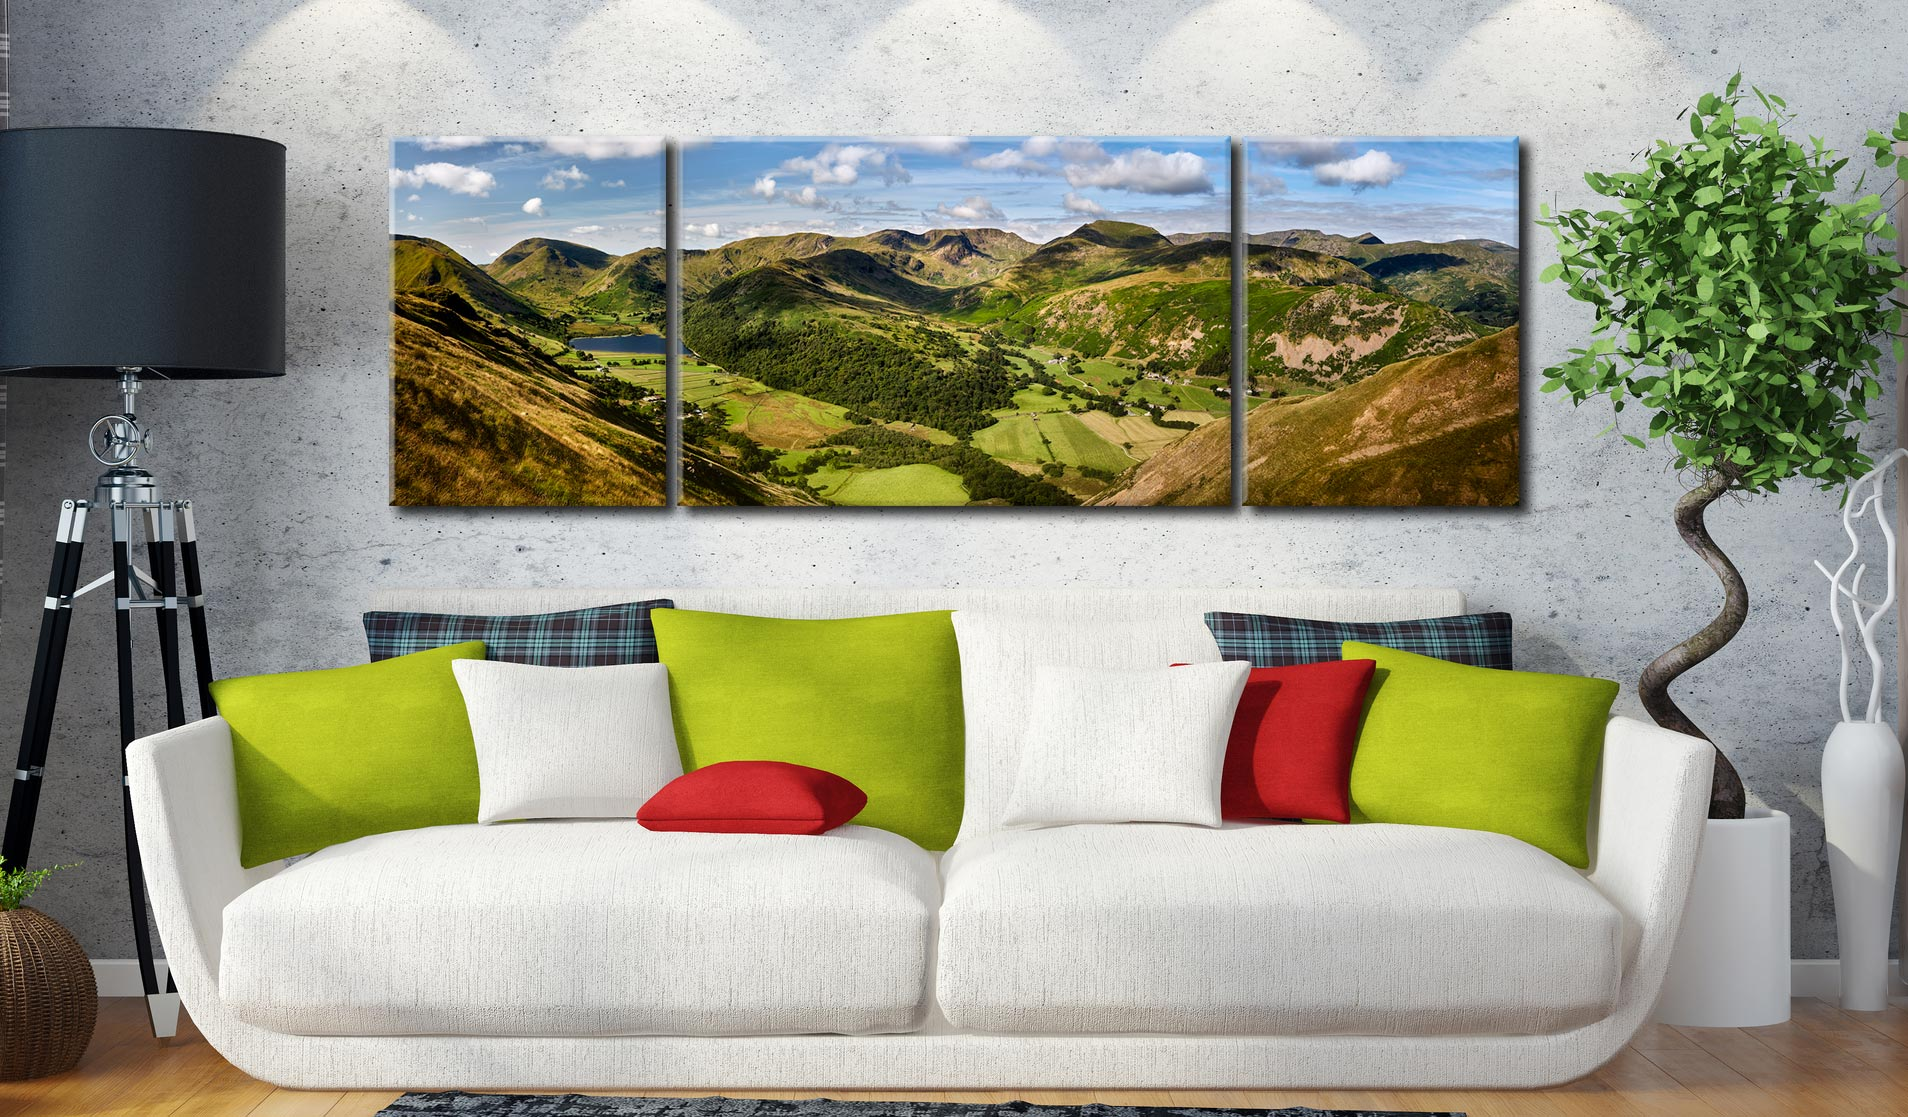 Deepdale and Dovedale Panorama - 3 Panel Wide Centre Canvas on Wall